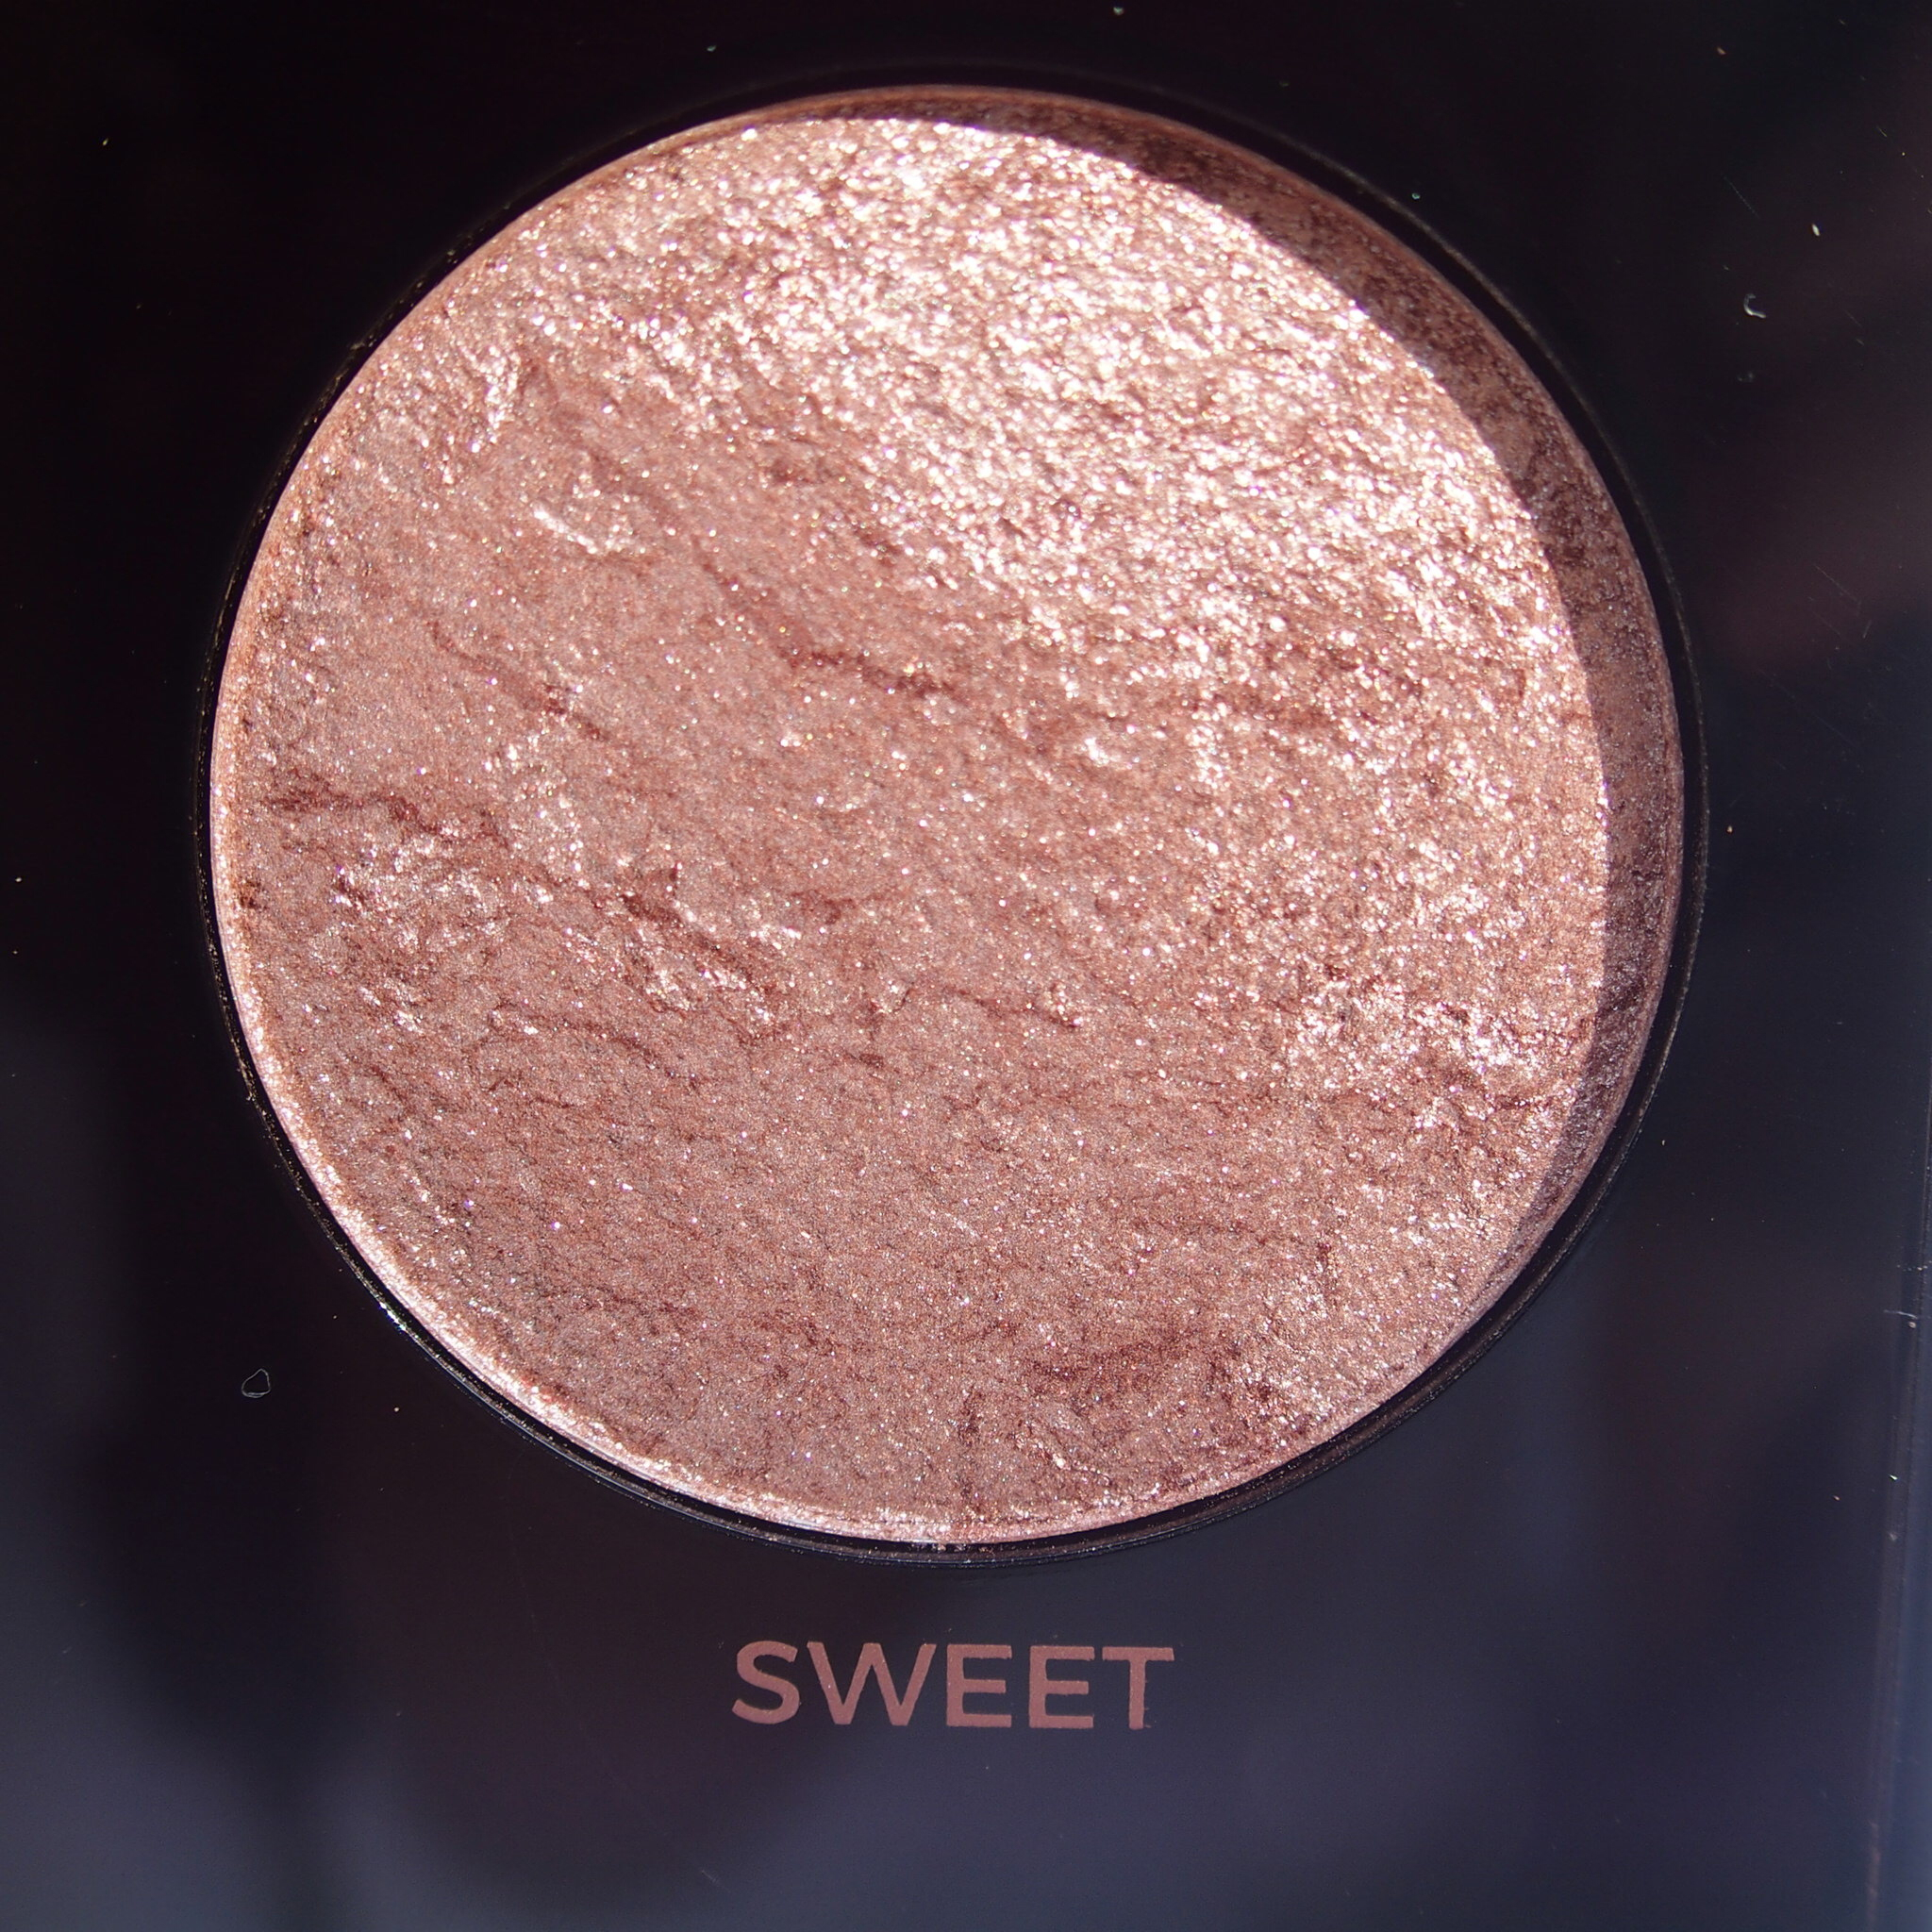 Makeup Revolution Pro HD Amplified Get Baked Palette swatches - Sweet